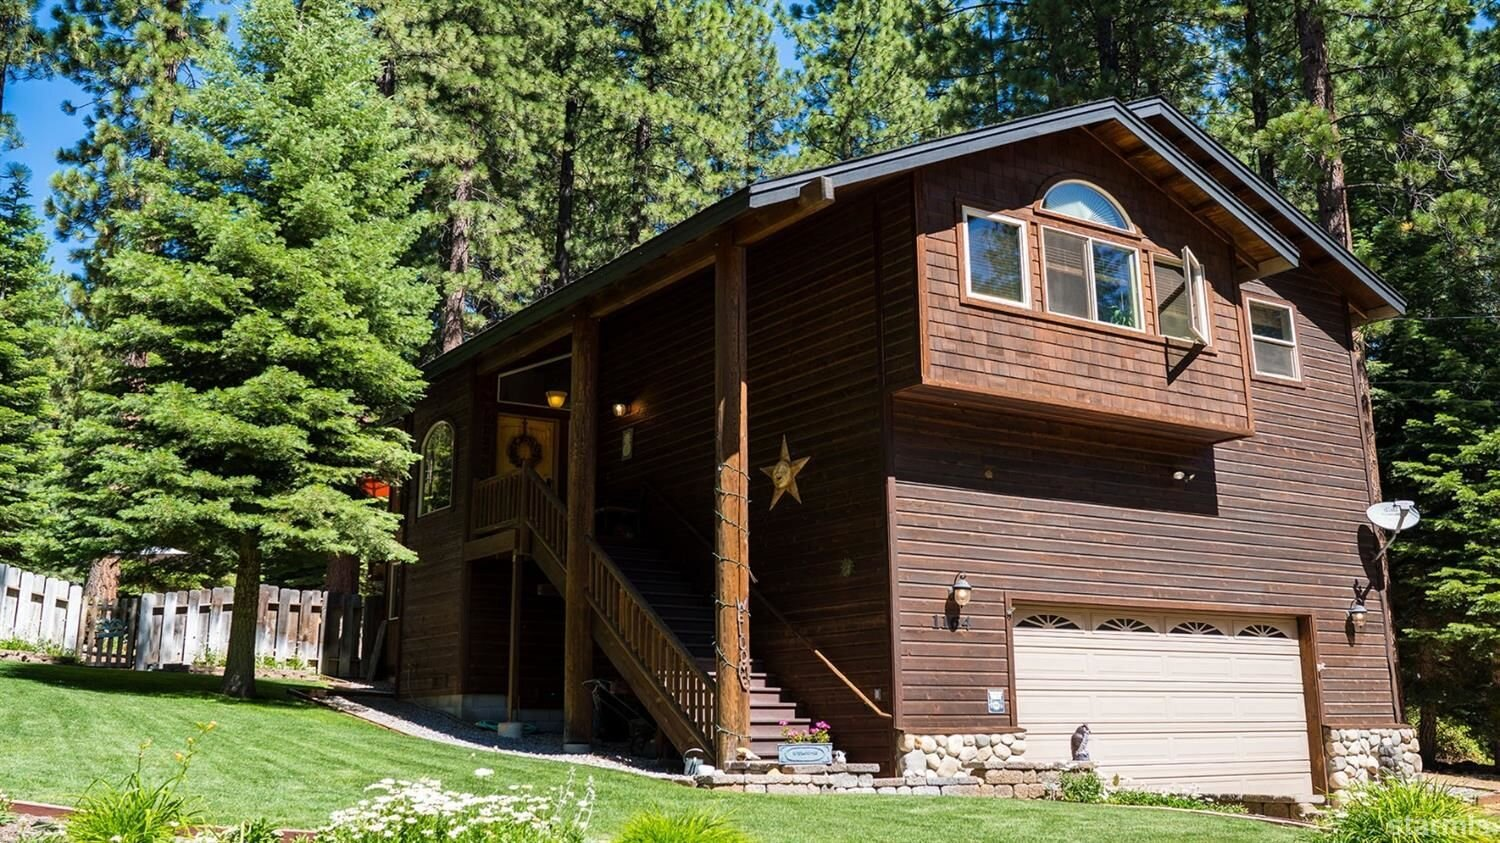 1164 Kulow Street, South Lake Tahoe, CA  4 Bed | 2 Bath | 2,130 sqft | $669,000 Sheila Edner | 530.545.0392